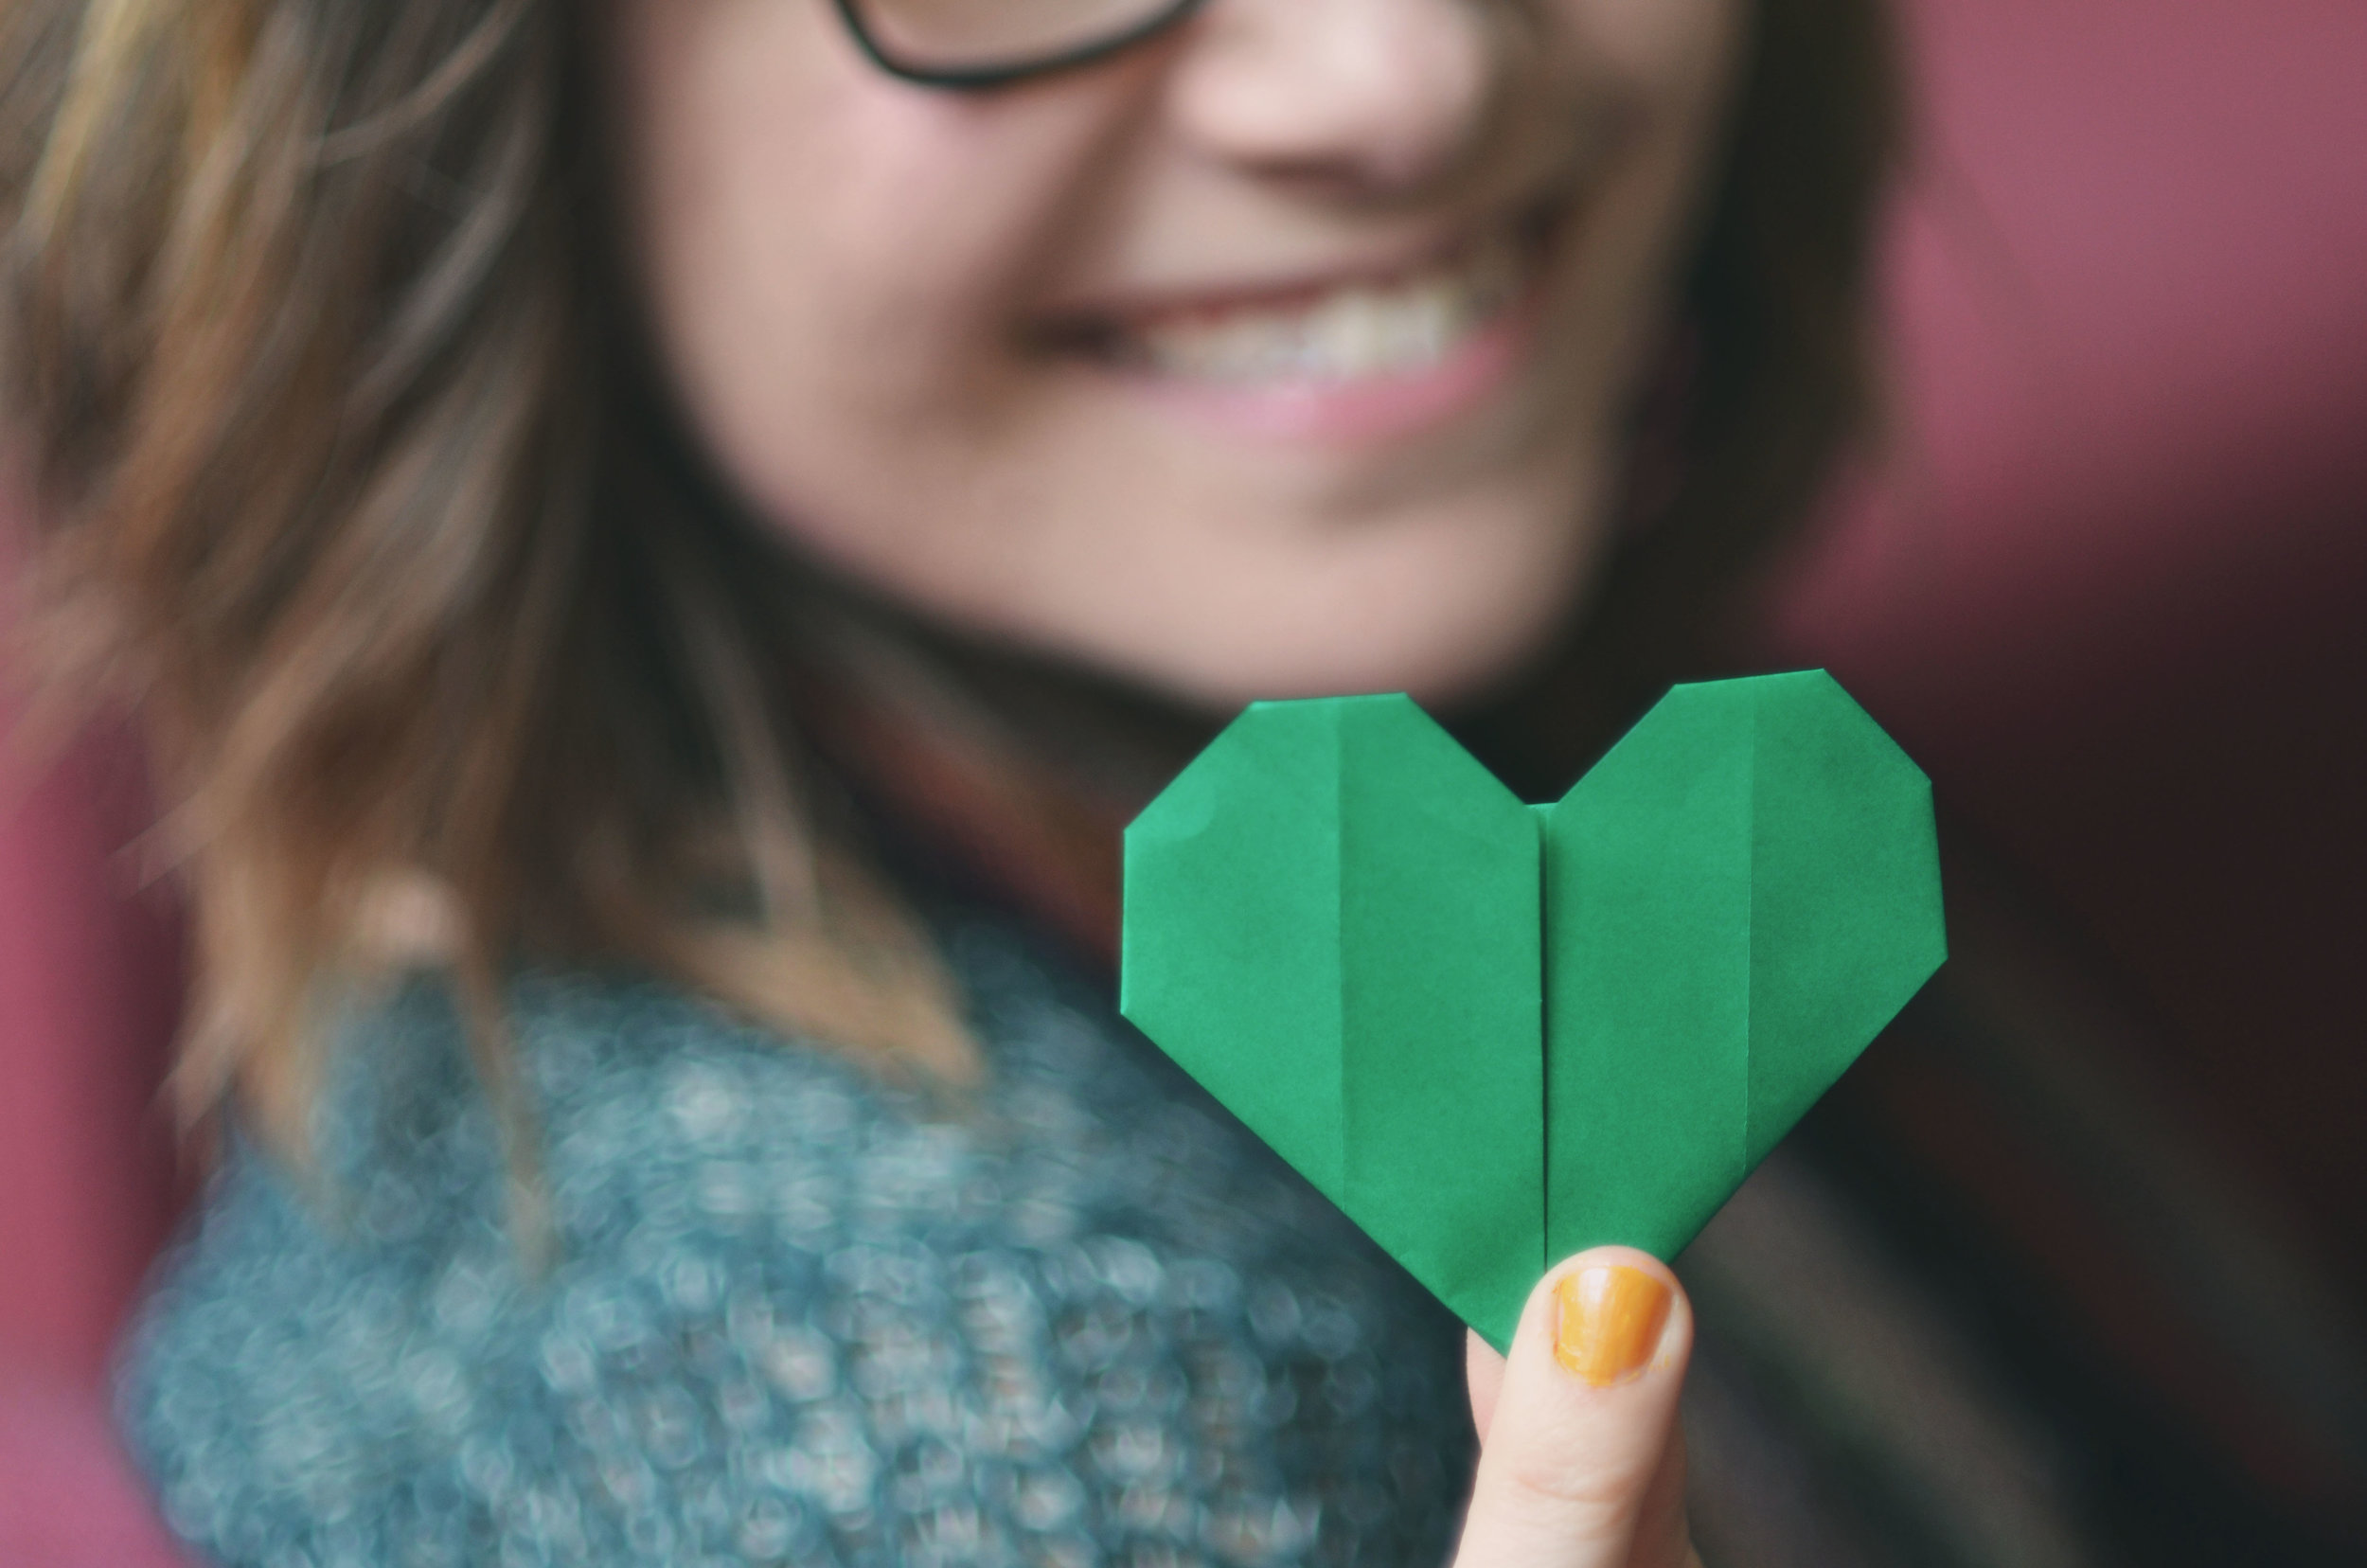 Thank you for joining us to #ShowTheLove!